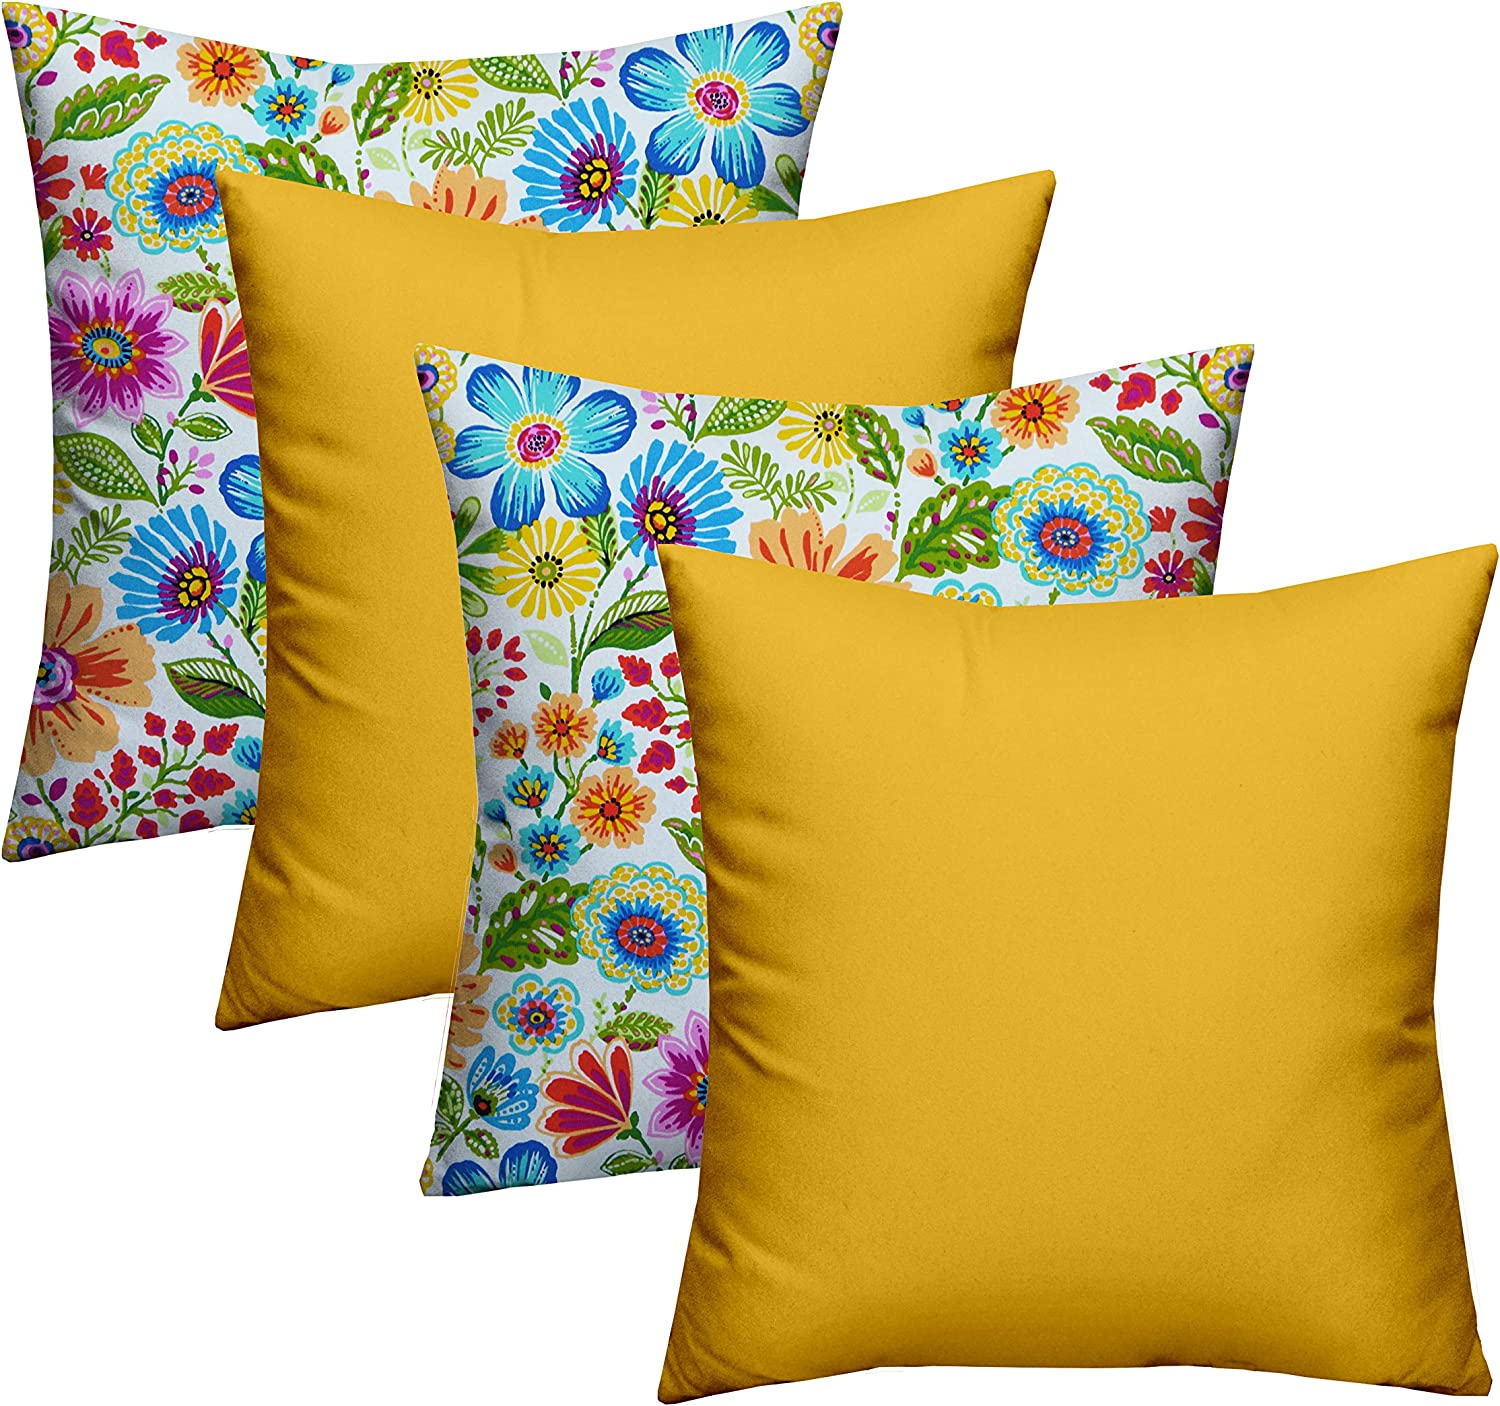 RSH Décor Designer Our shop OFFers the best service Indoor Outdoor Pack Pillow 4 Spasm price Coordinating -